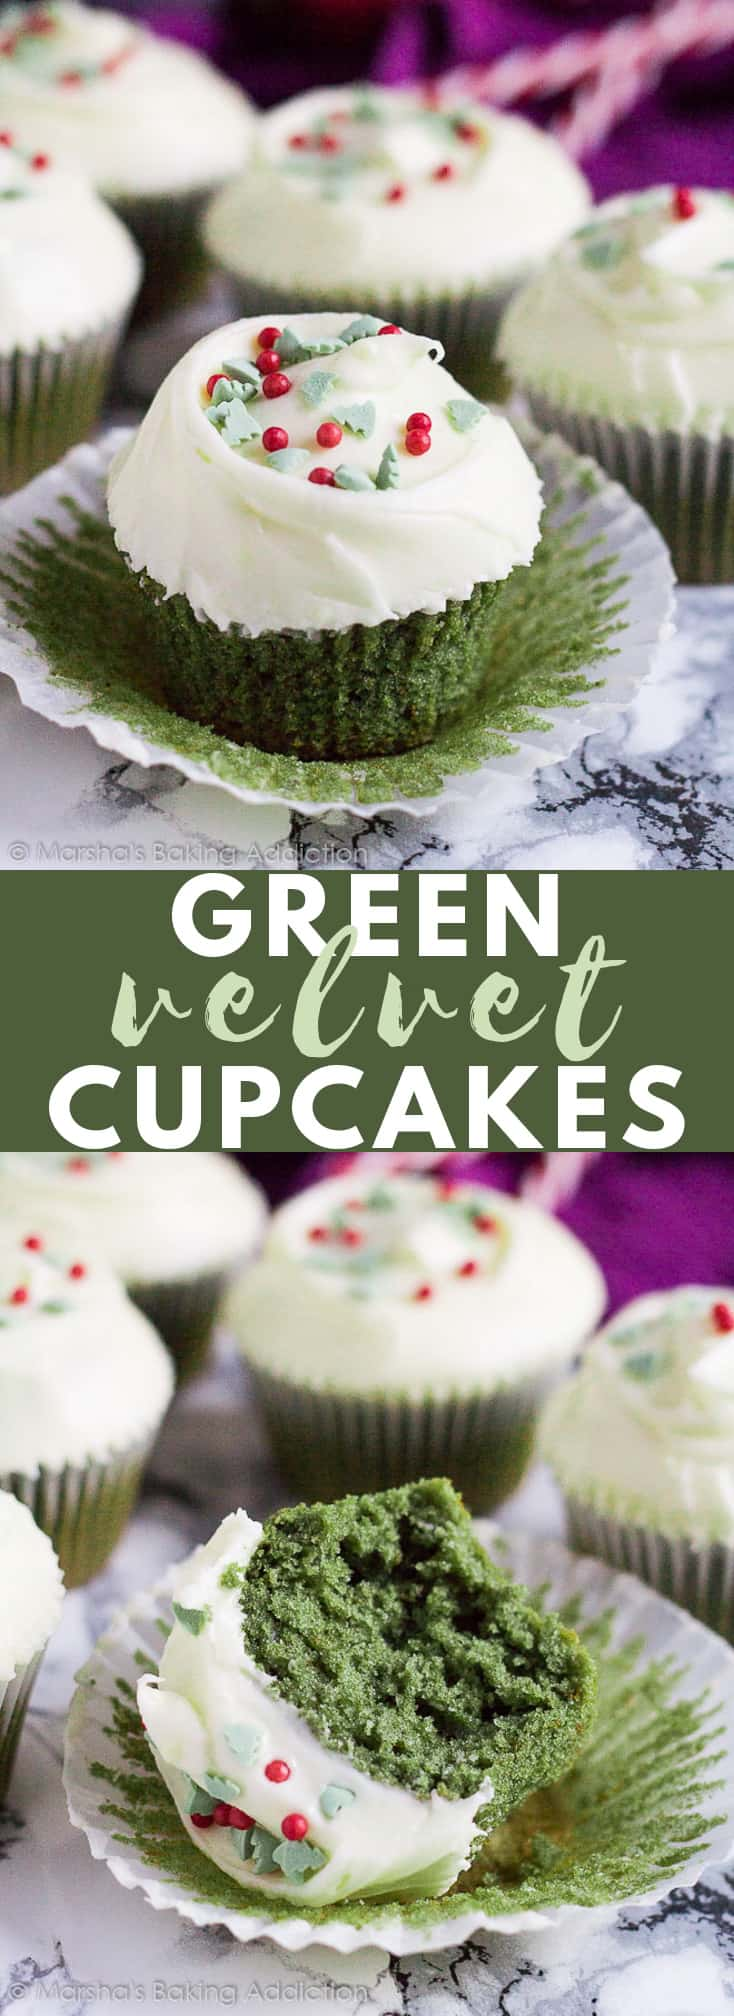 Green Velvet Cupcakes - Deliciously moist and fluffy green vanilla cupcakes topped with a cream cheese frosting and Christmas sprinkles! #greenvelvet #cupcakes #cupcakerecipes #christmas #christmasrecipes